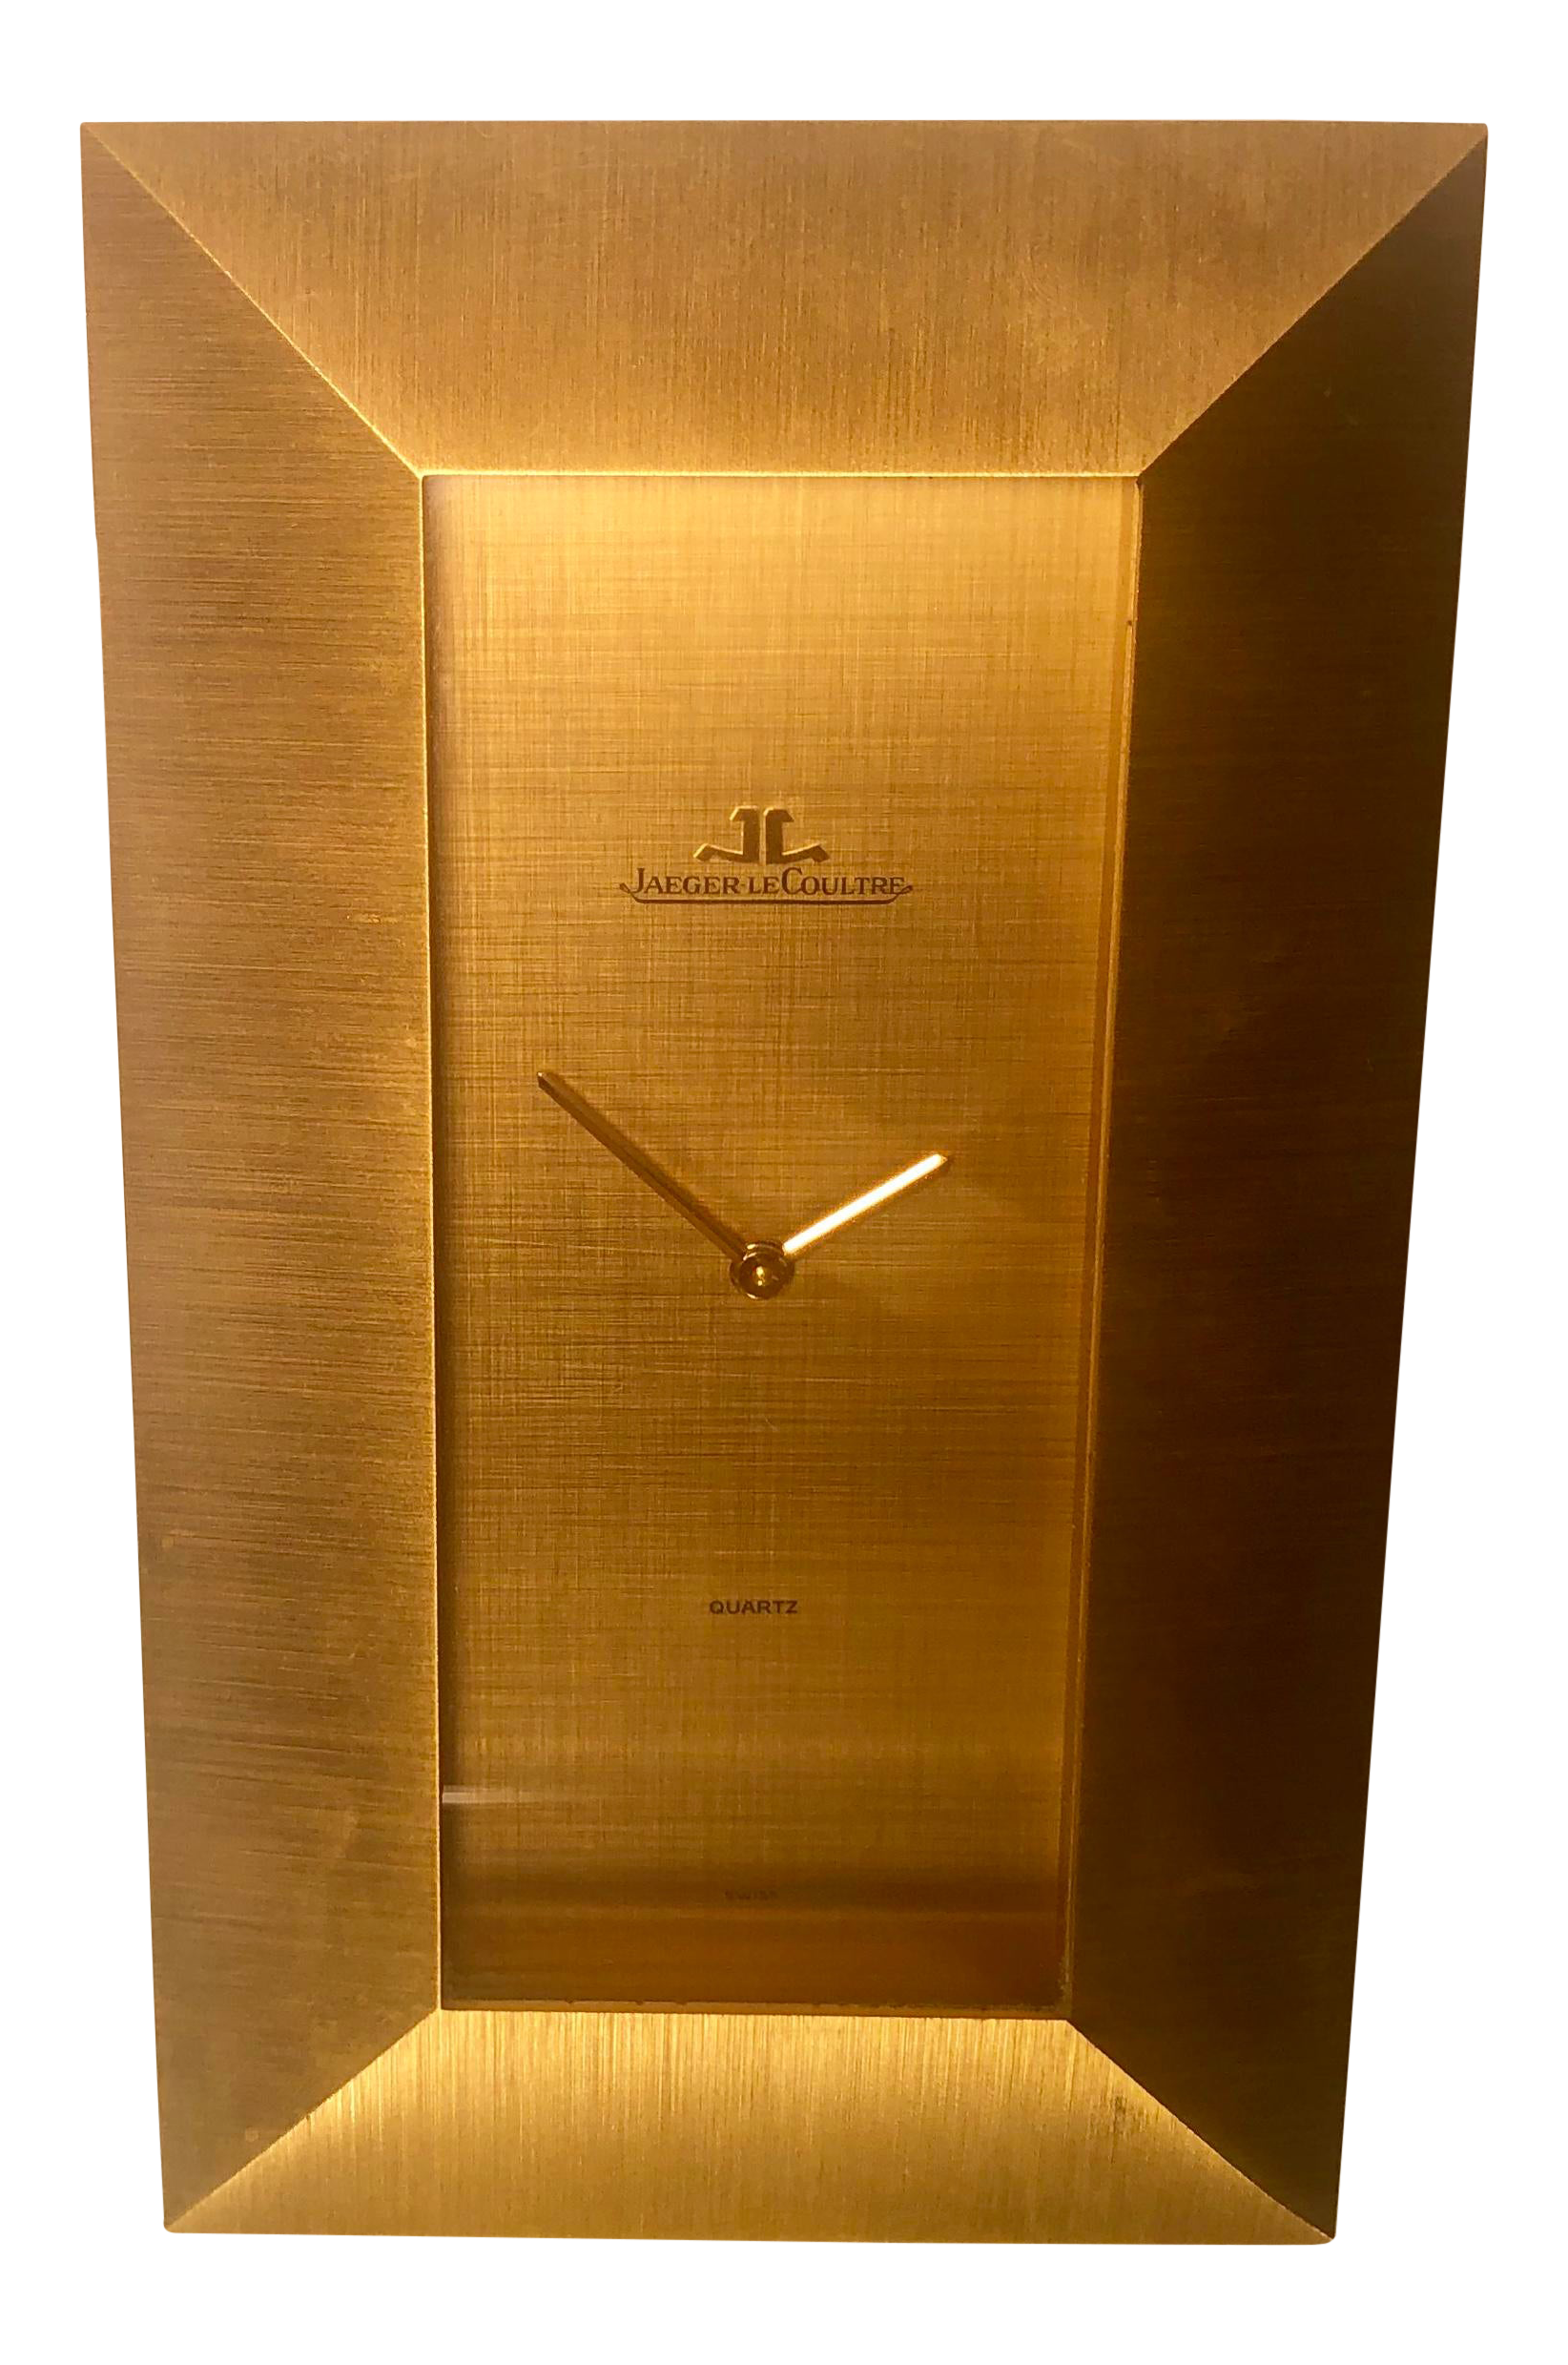 Jaeger Le Coultre Swiss Made Mid-Century Modern Desk Clock